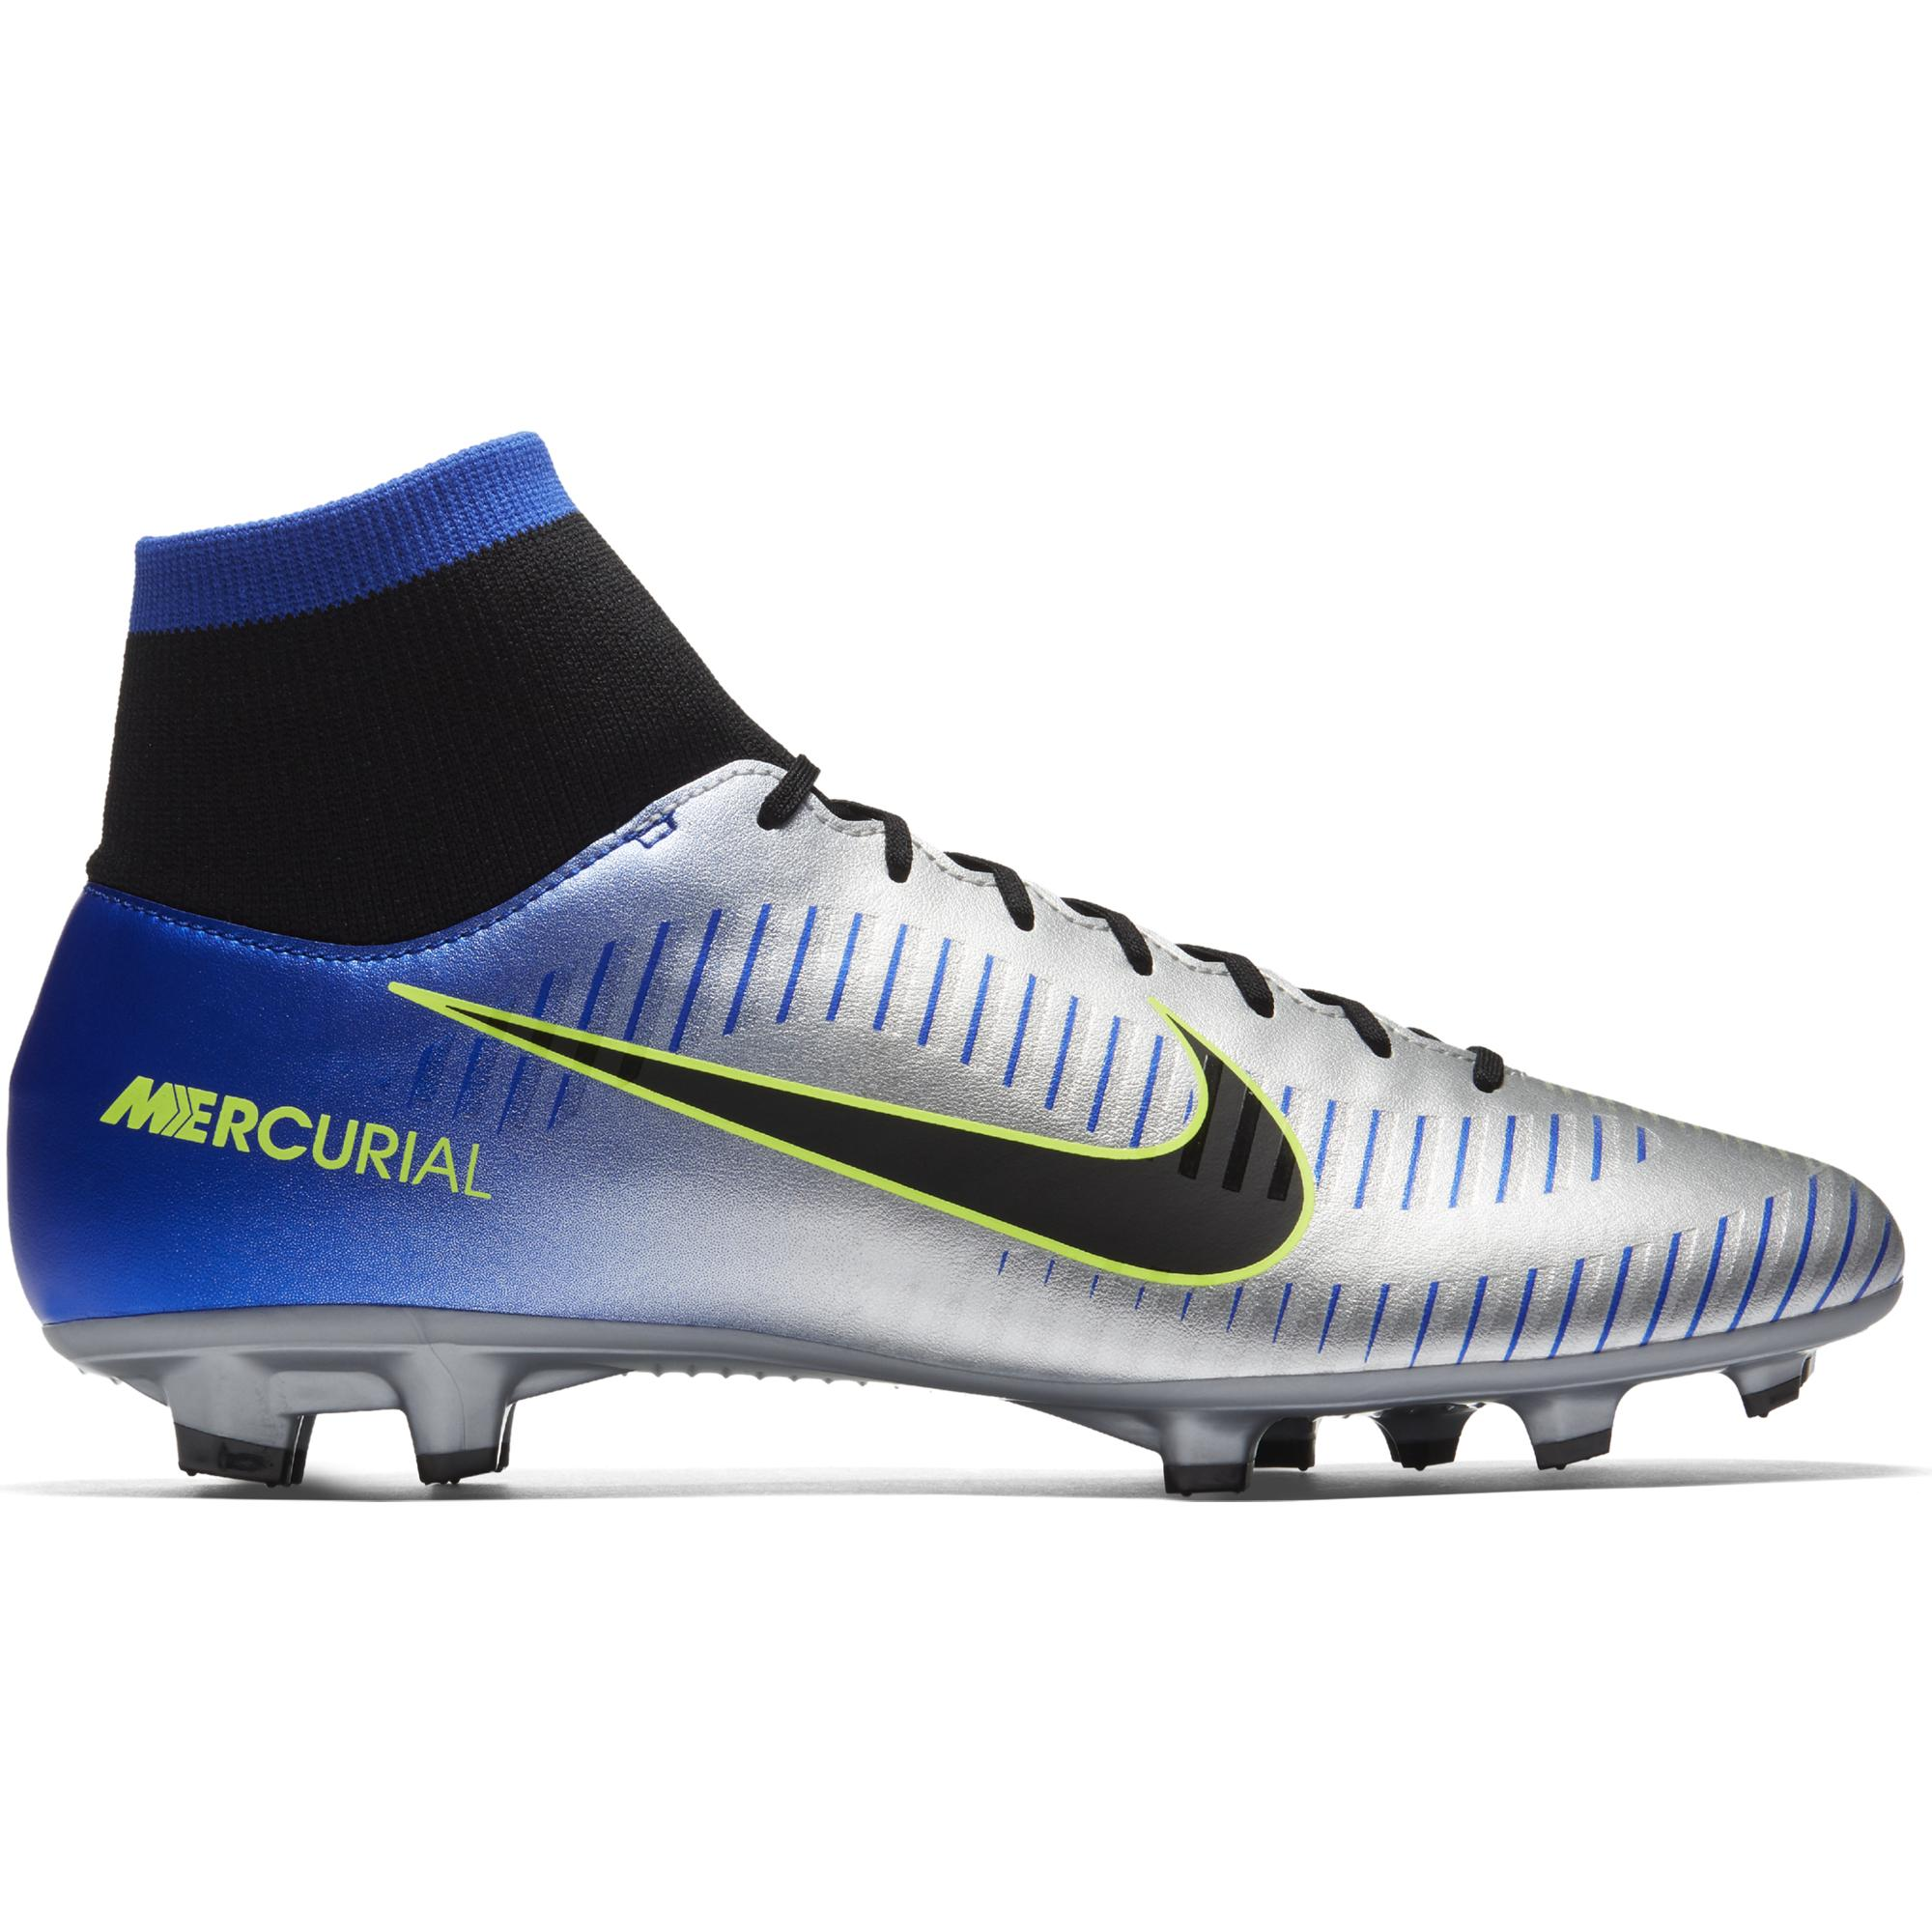 8bcfce6b0 Nike Football Shoes Mercurial Victory Vi Df Njr Fg Neymar Jr Racer ...